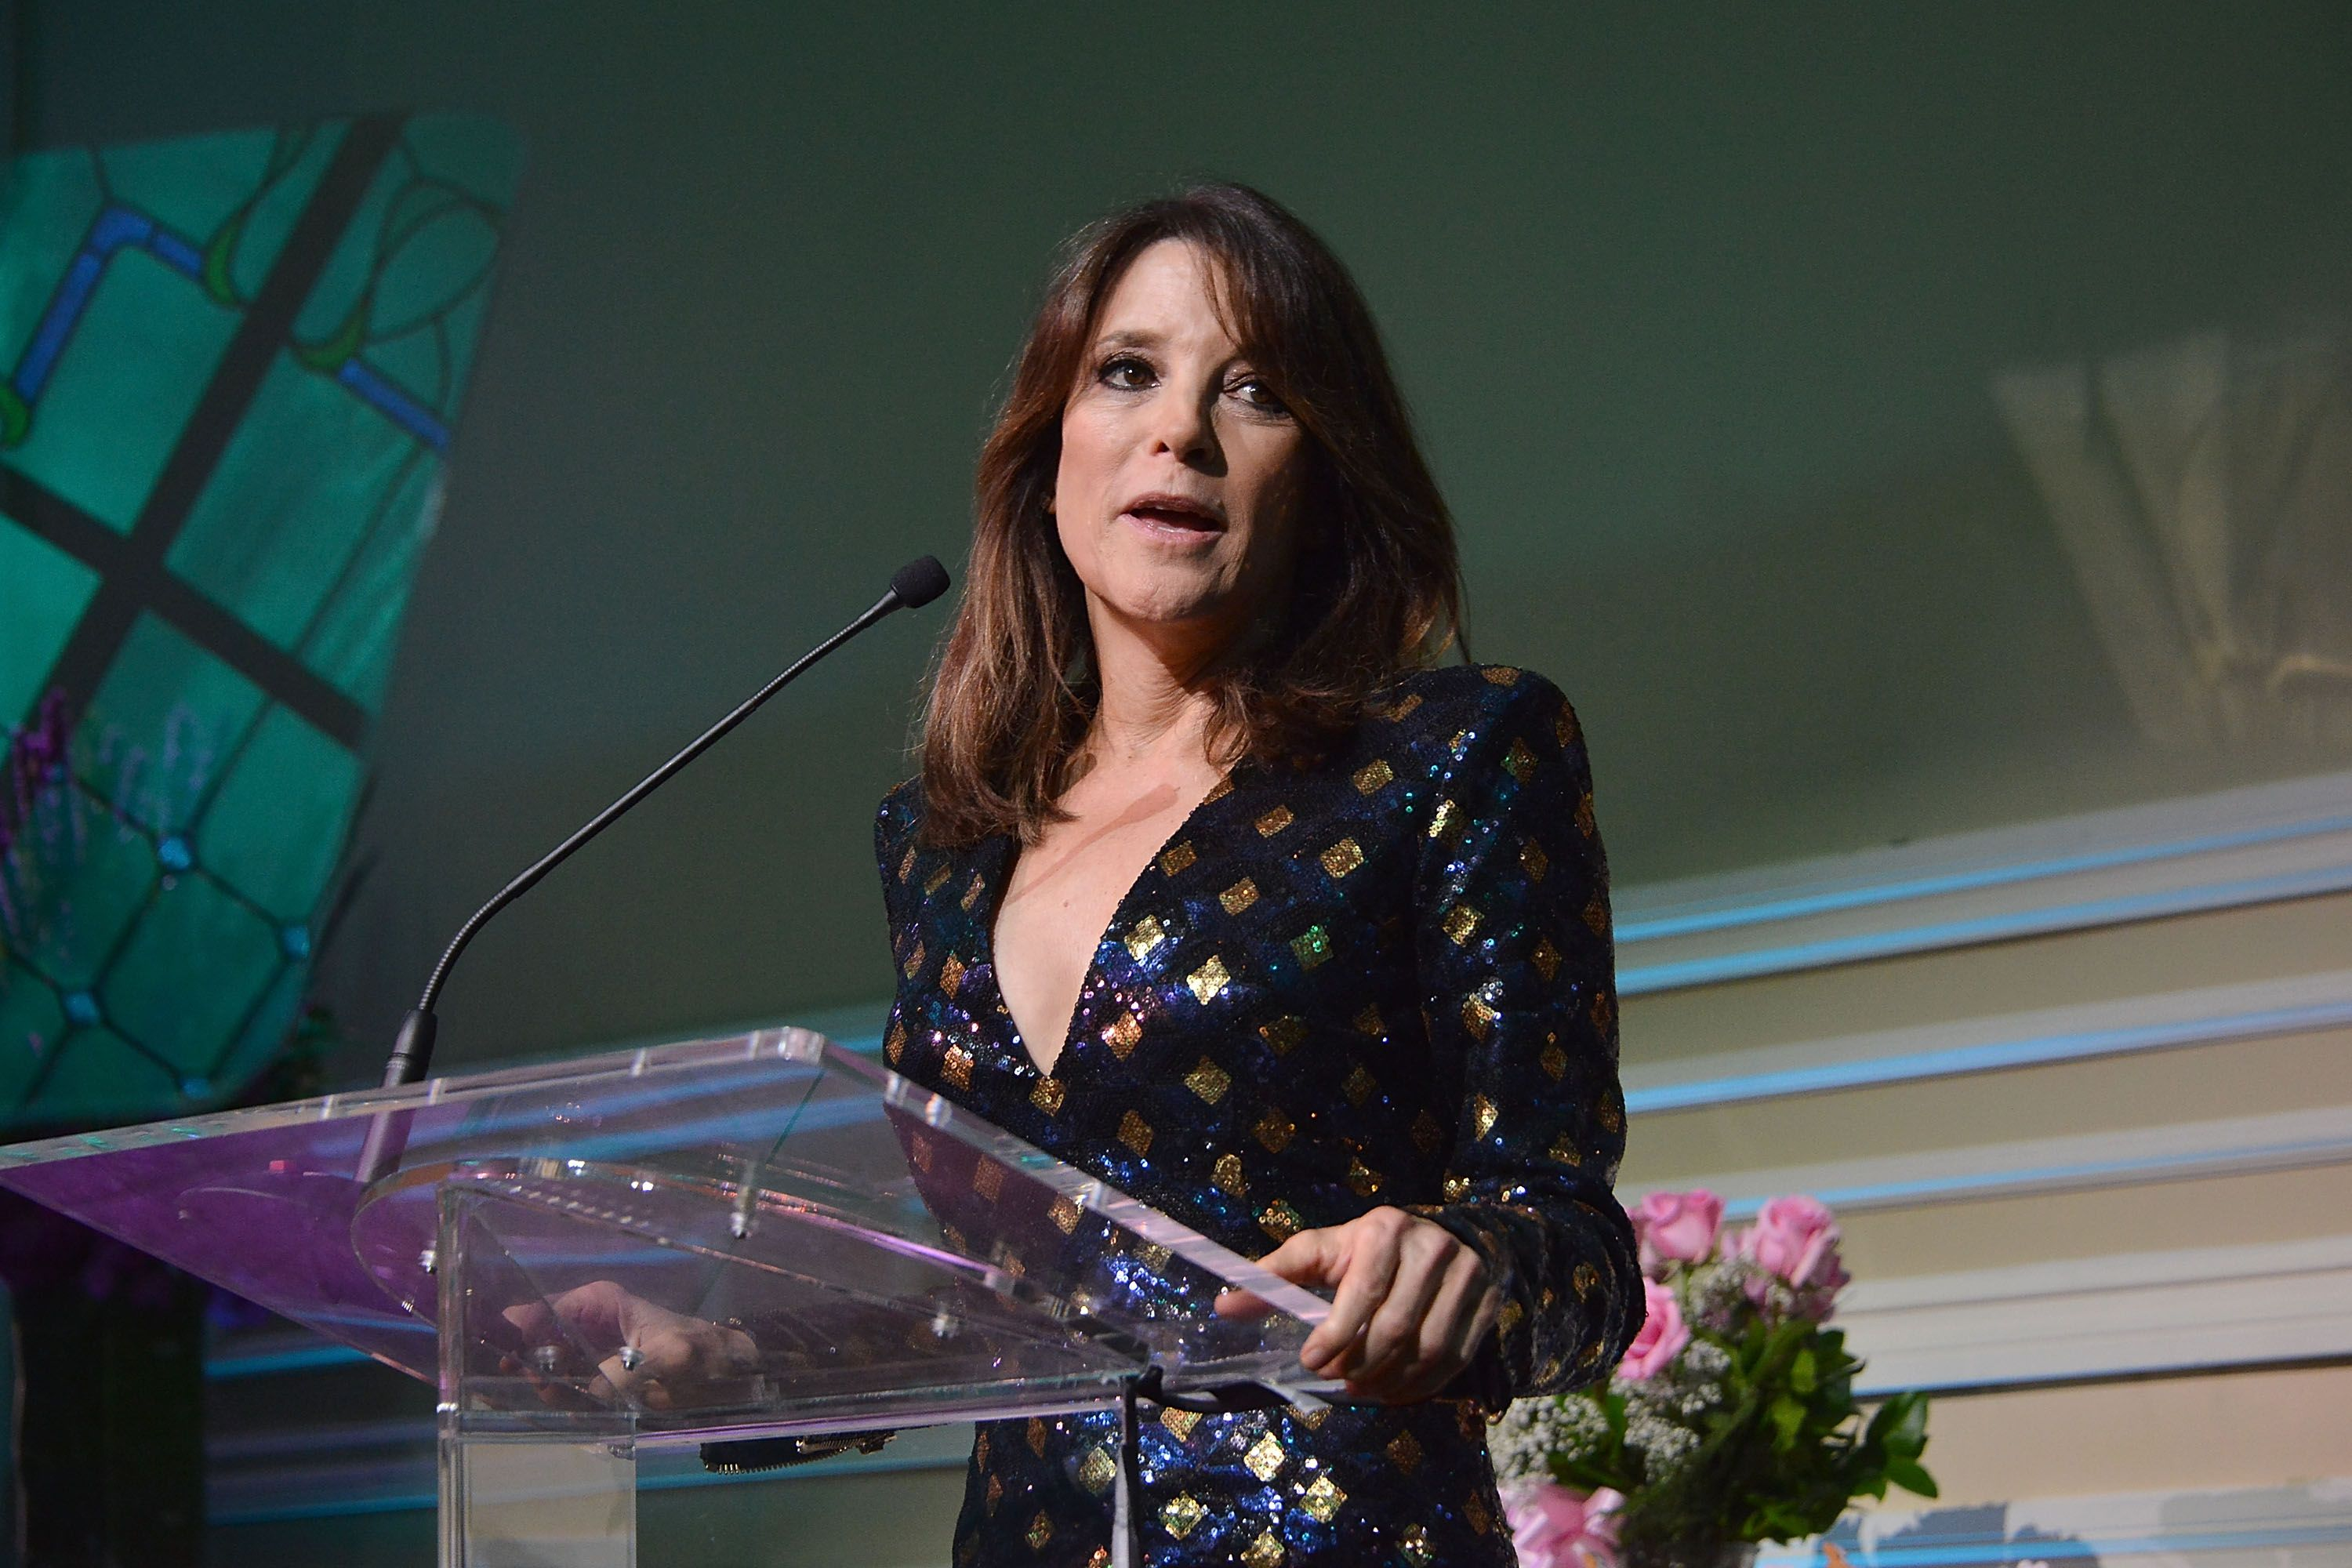 Project Angel Food's Angel Awards 2015, Honoring Marianne Williamson & Founding Team As Well As Entertainment Industry Foundation